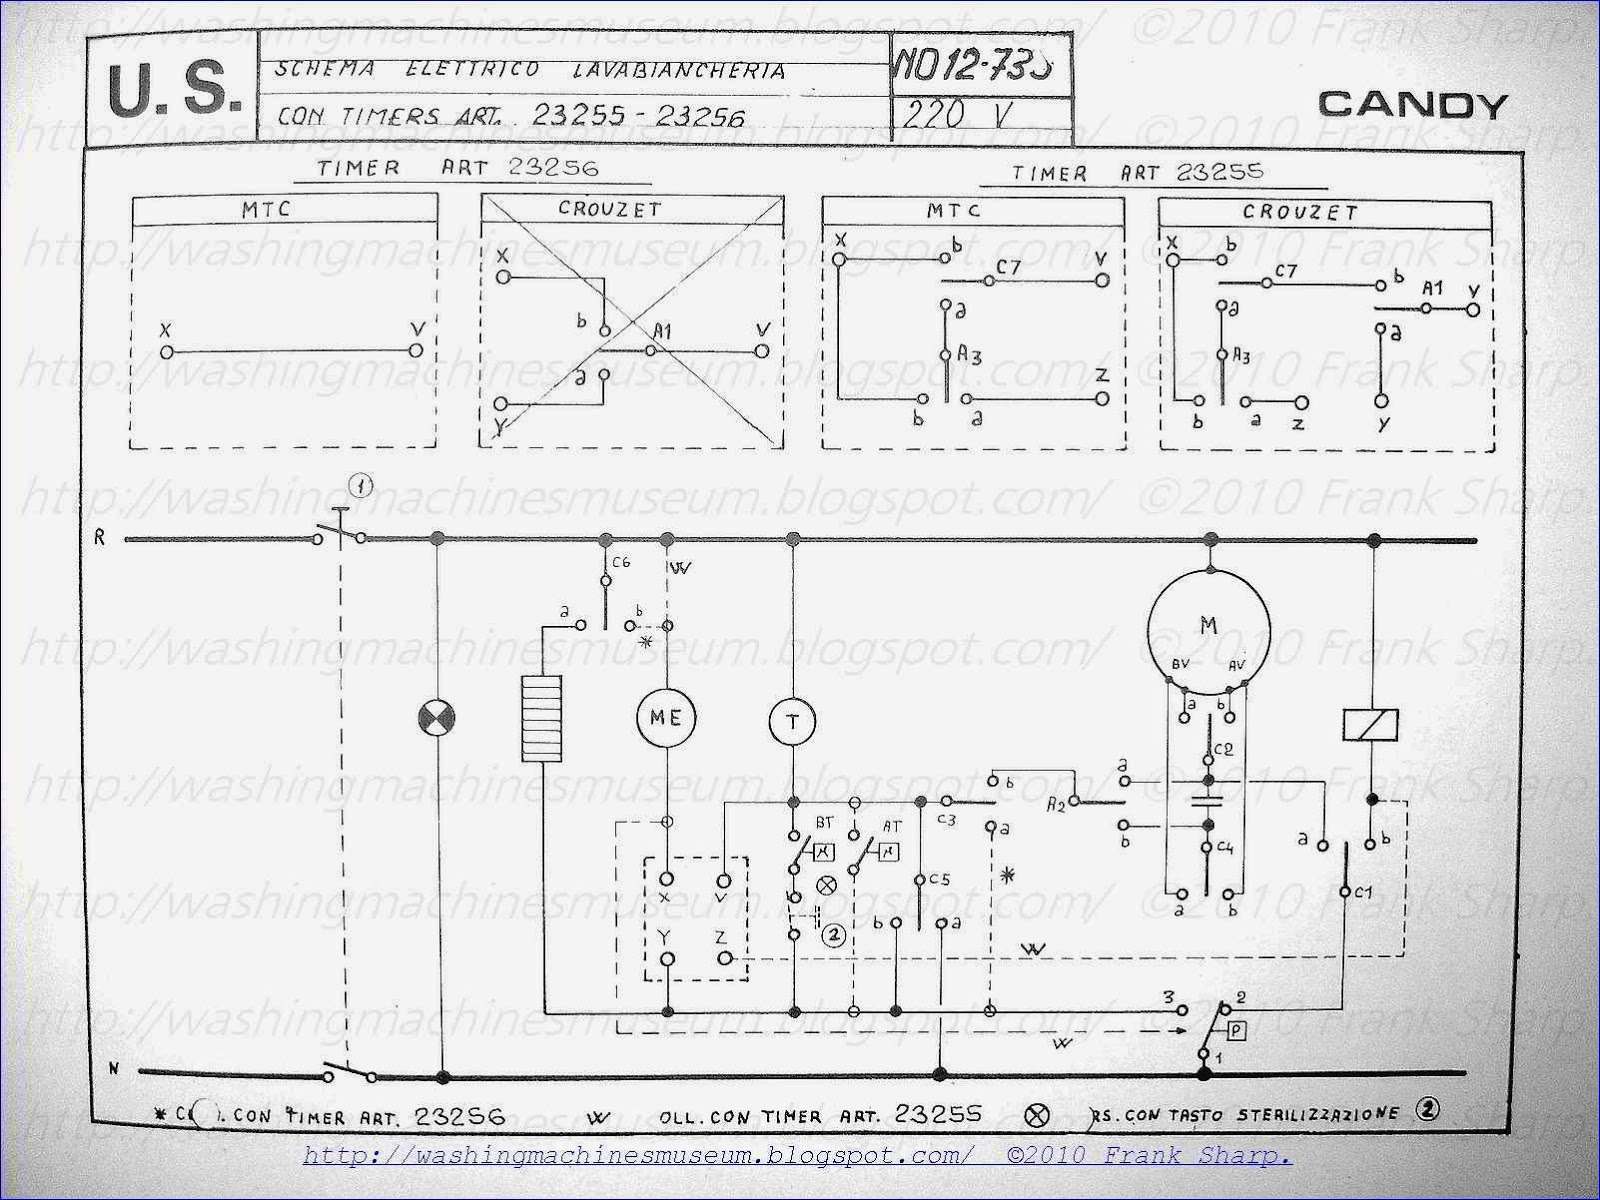 Maytag Oven Wiring Diagram Trusted Schematics Dryer 3 Prong Along With Gas Also Washer Timer Somurich Com Parts